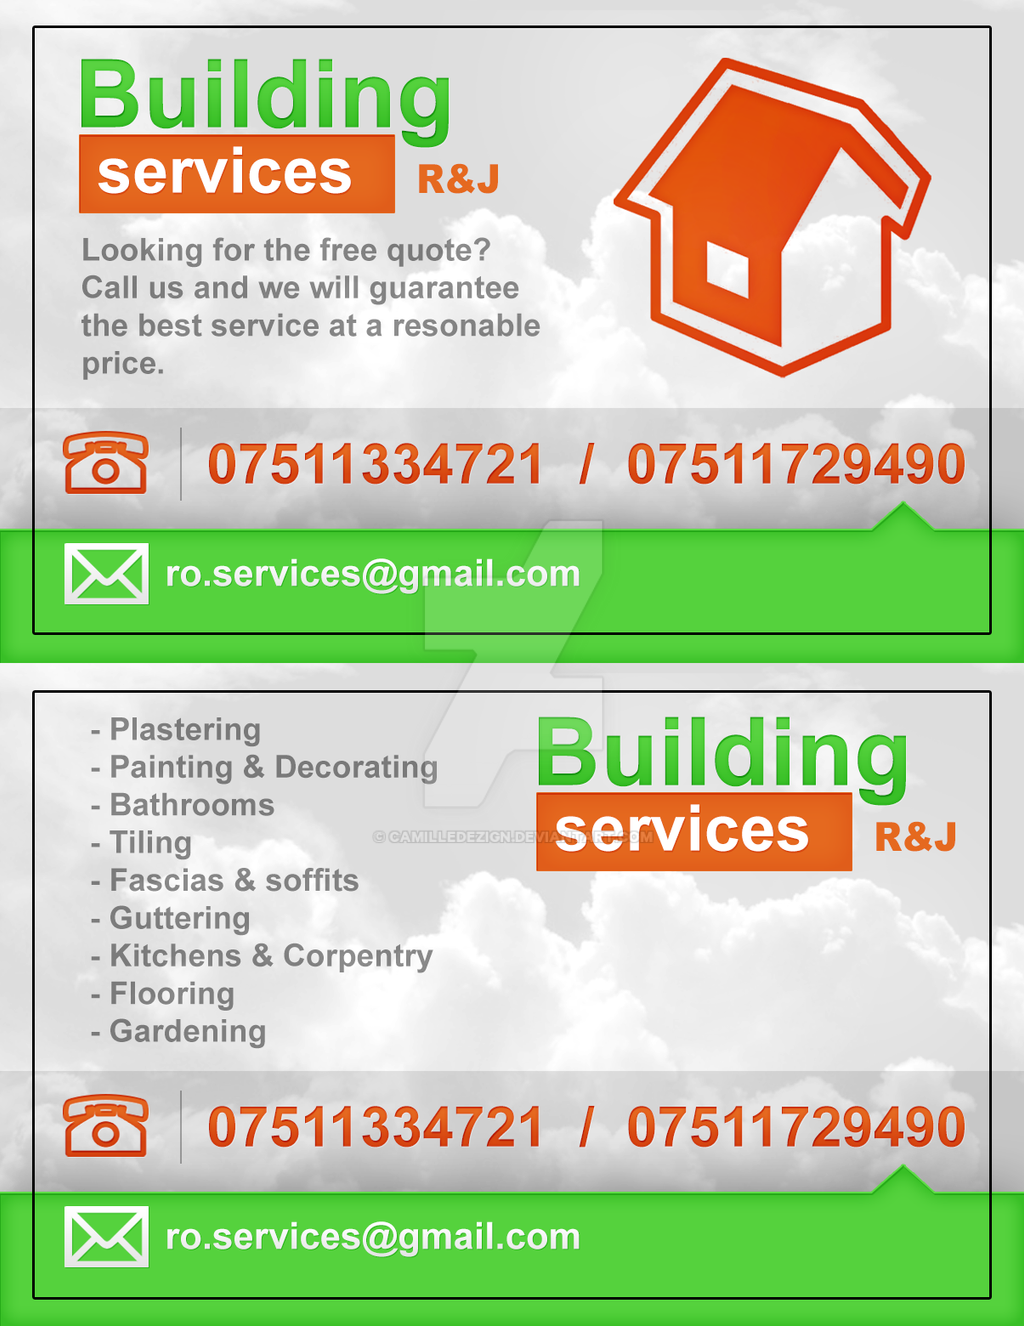 Building services business card by camilledezign on deviantart building services business card by camilledezign magicingreecefo Choice Image